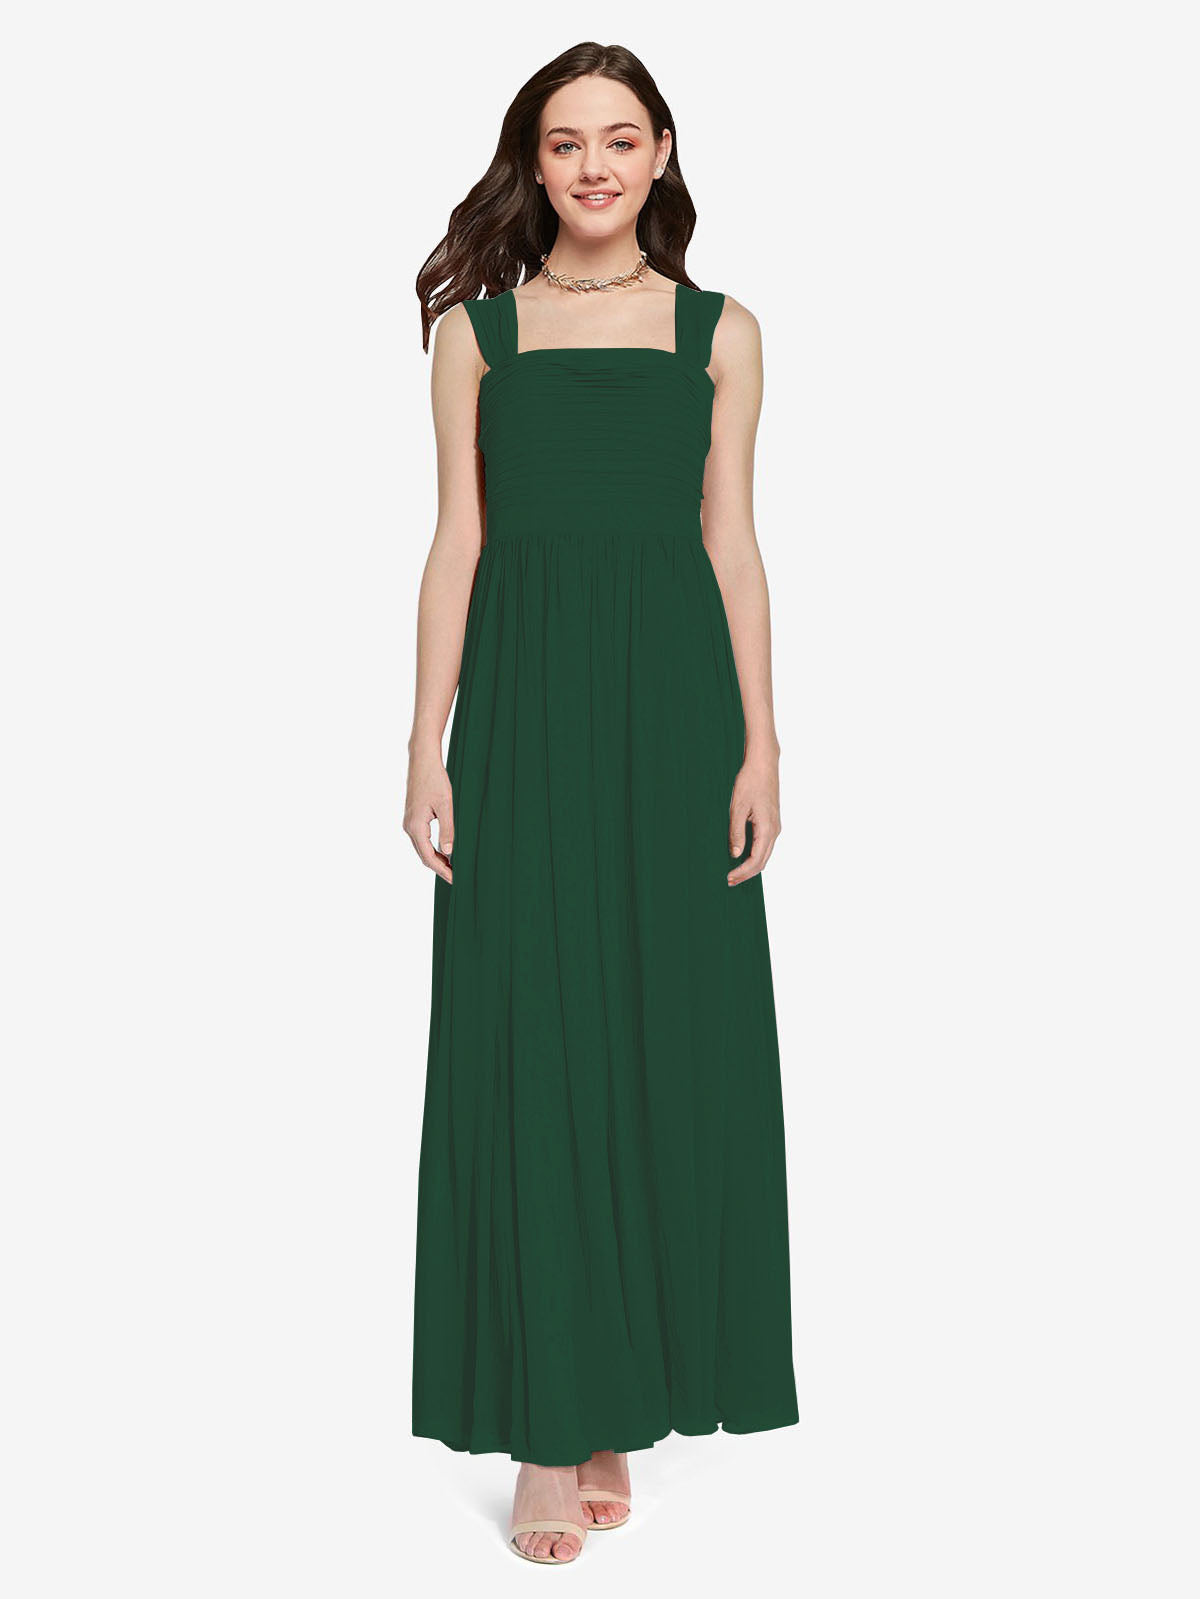 Long A-Line Square Sleeveless Dark Green Chiffon Bridesmaid Dress Aldridge